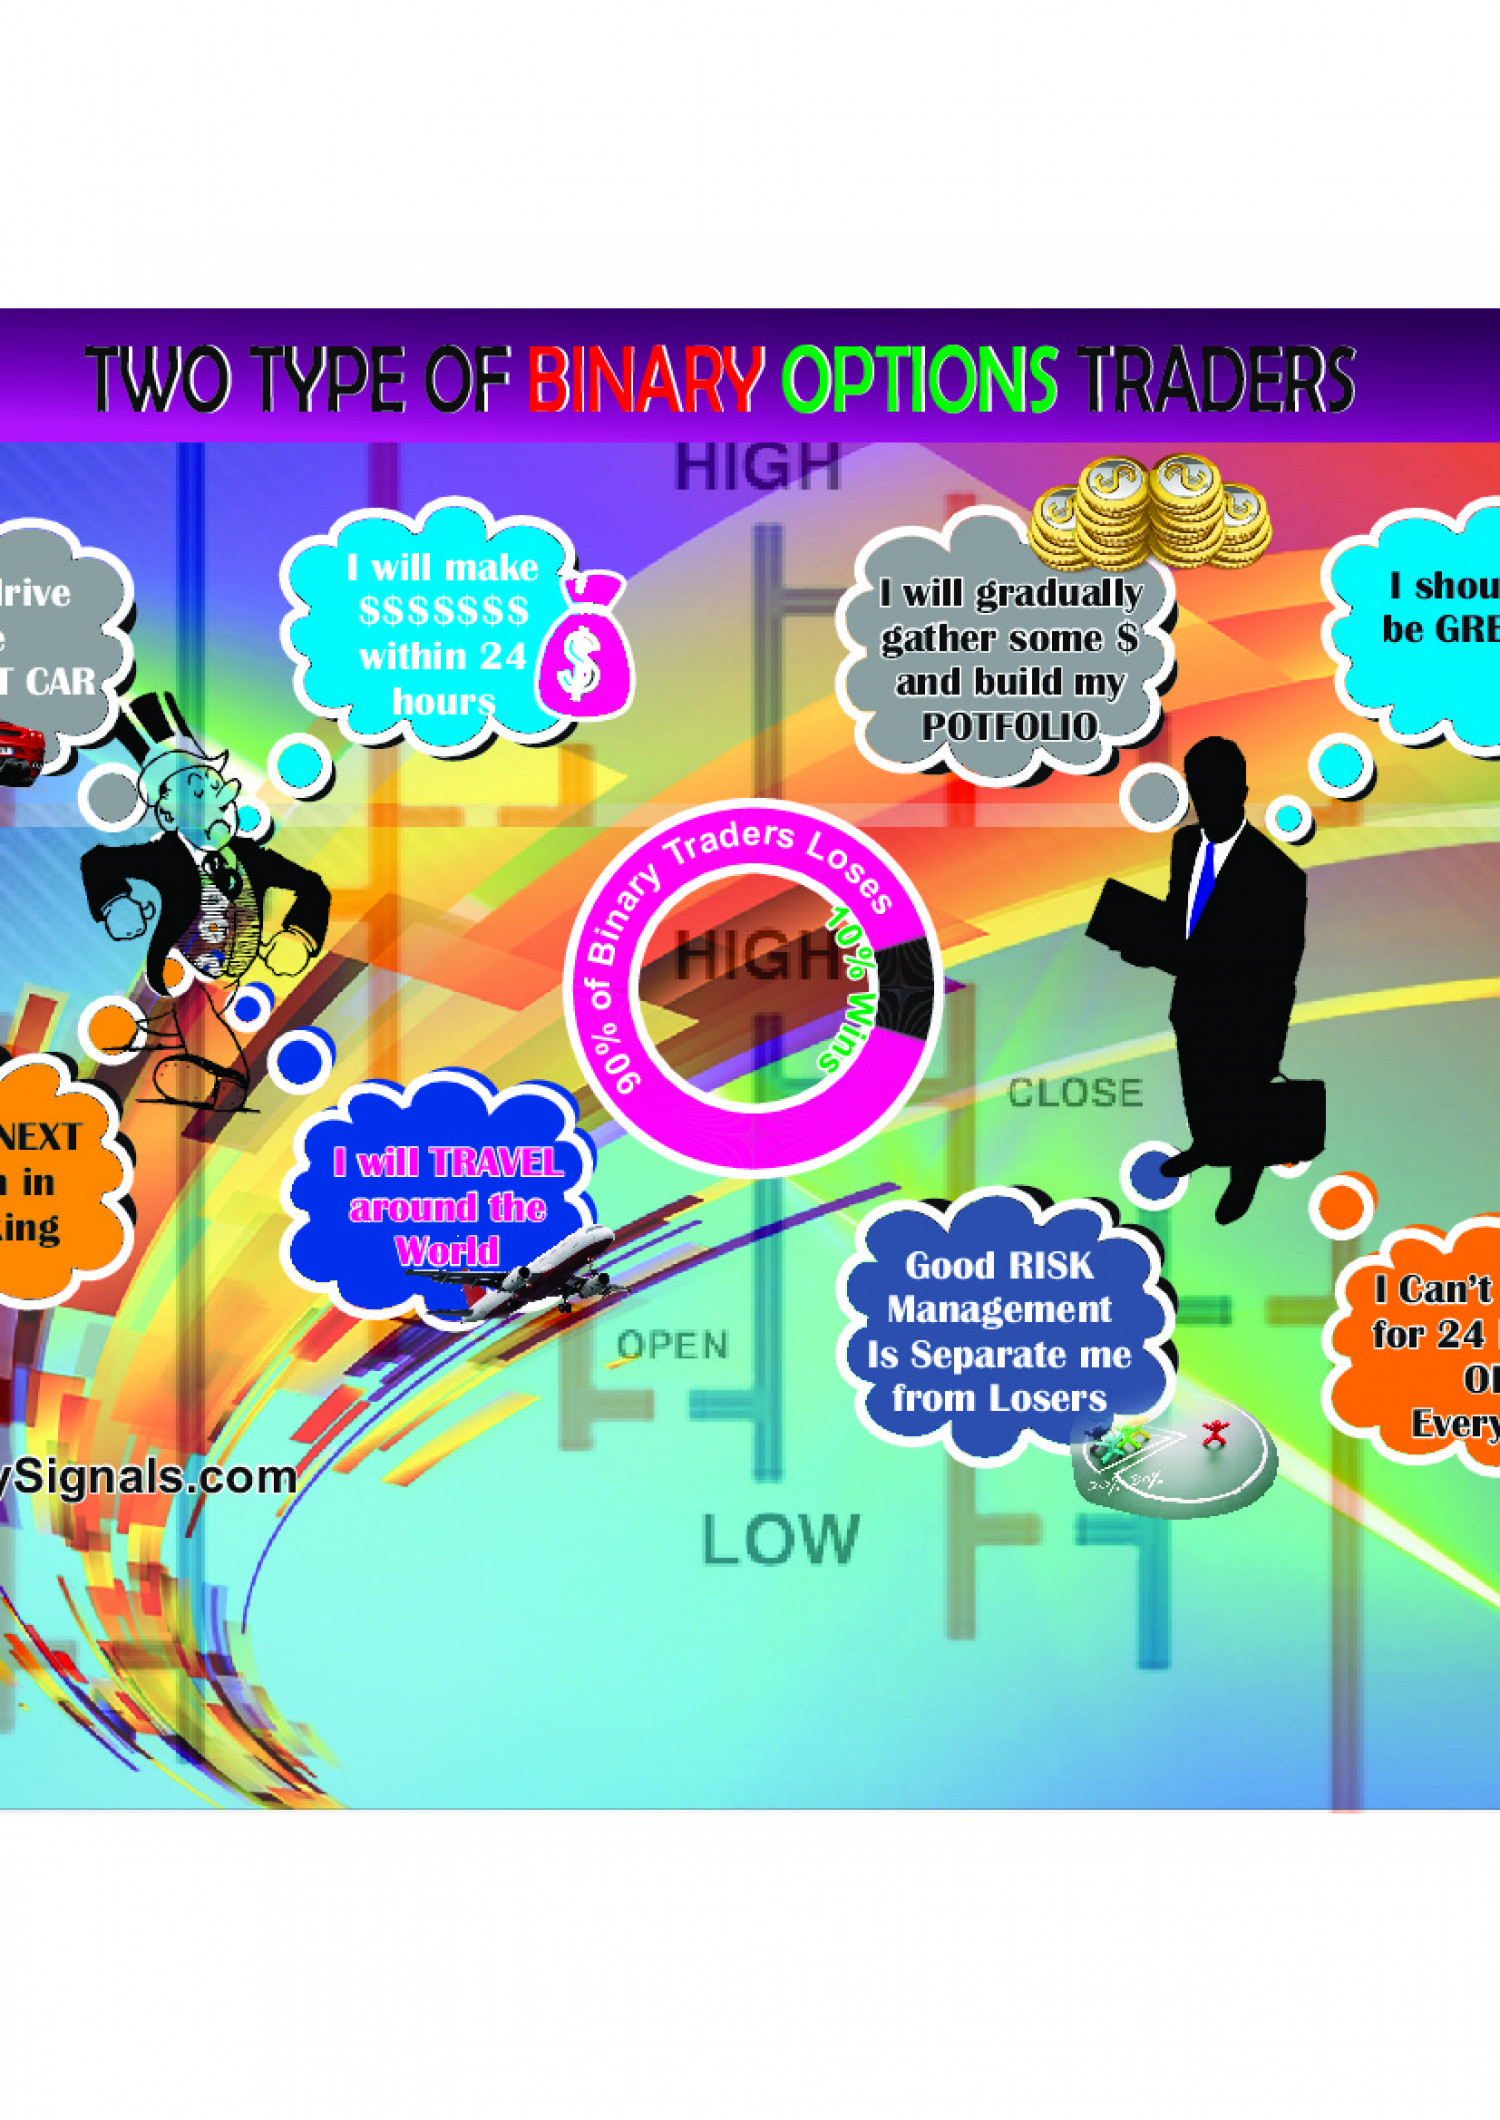 Why Most People Loose Why Trading Binary Options